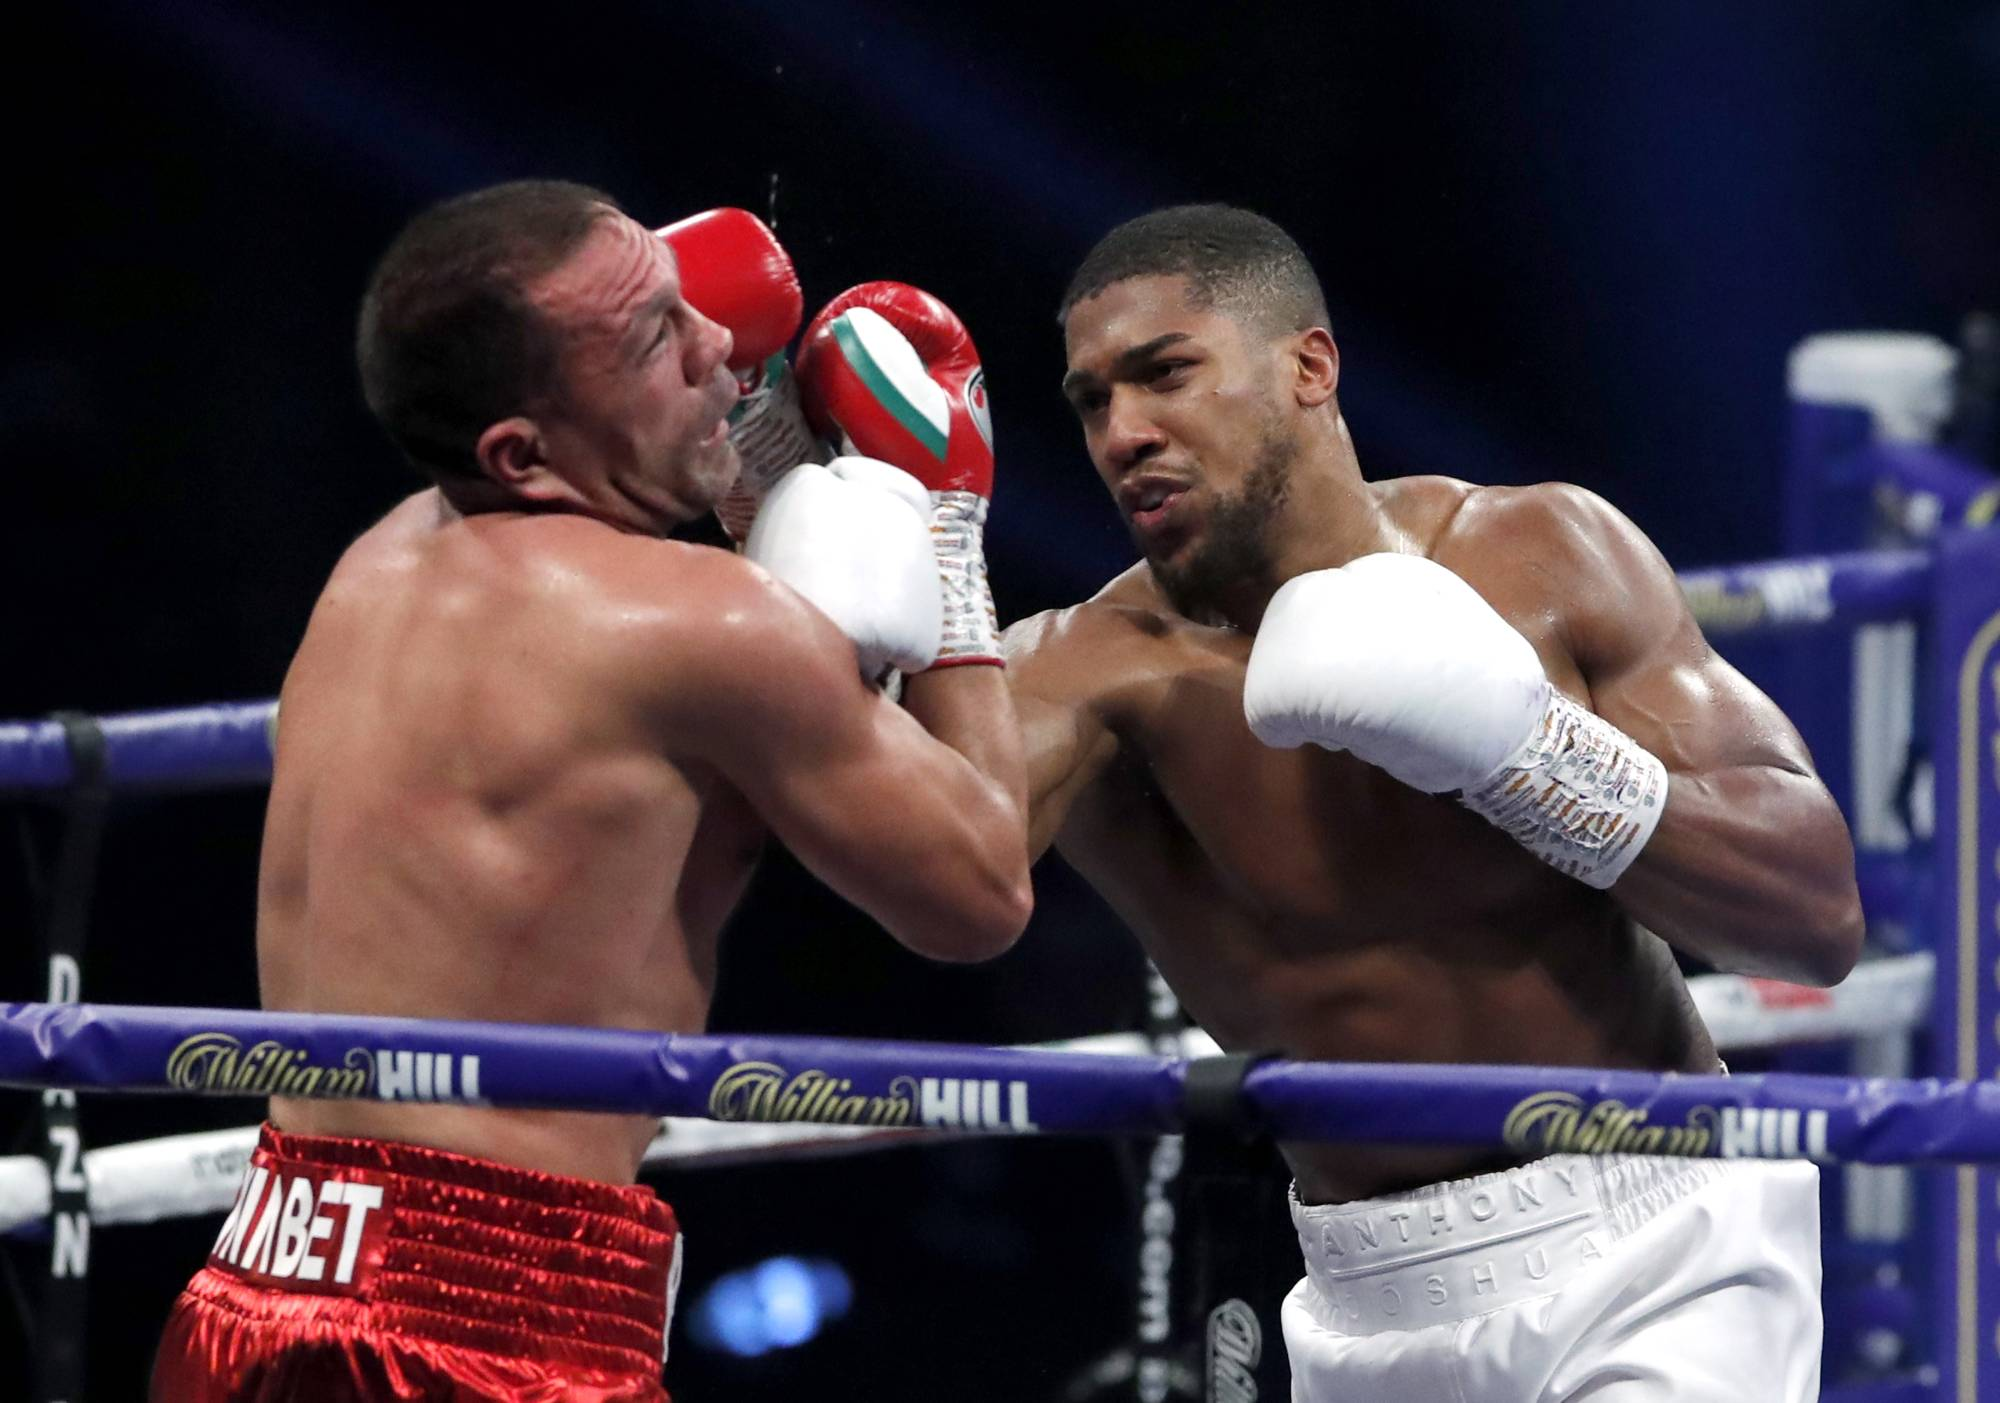 Anthony Joshua punches Kubrat Pulev during their heavyweight world title fight in London on Dec. 12, 2020. | POOL / VIA REUTERS